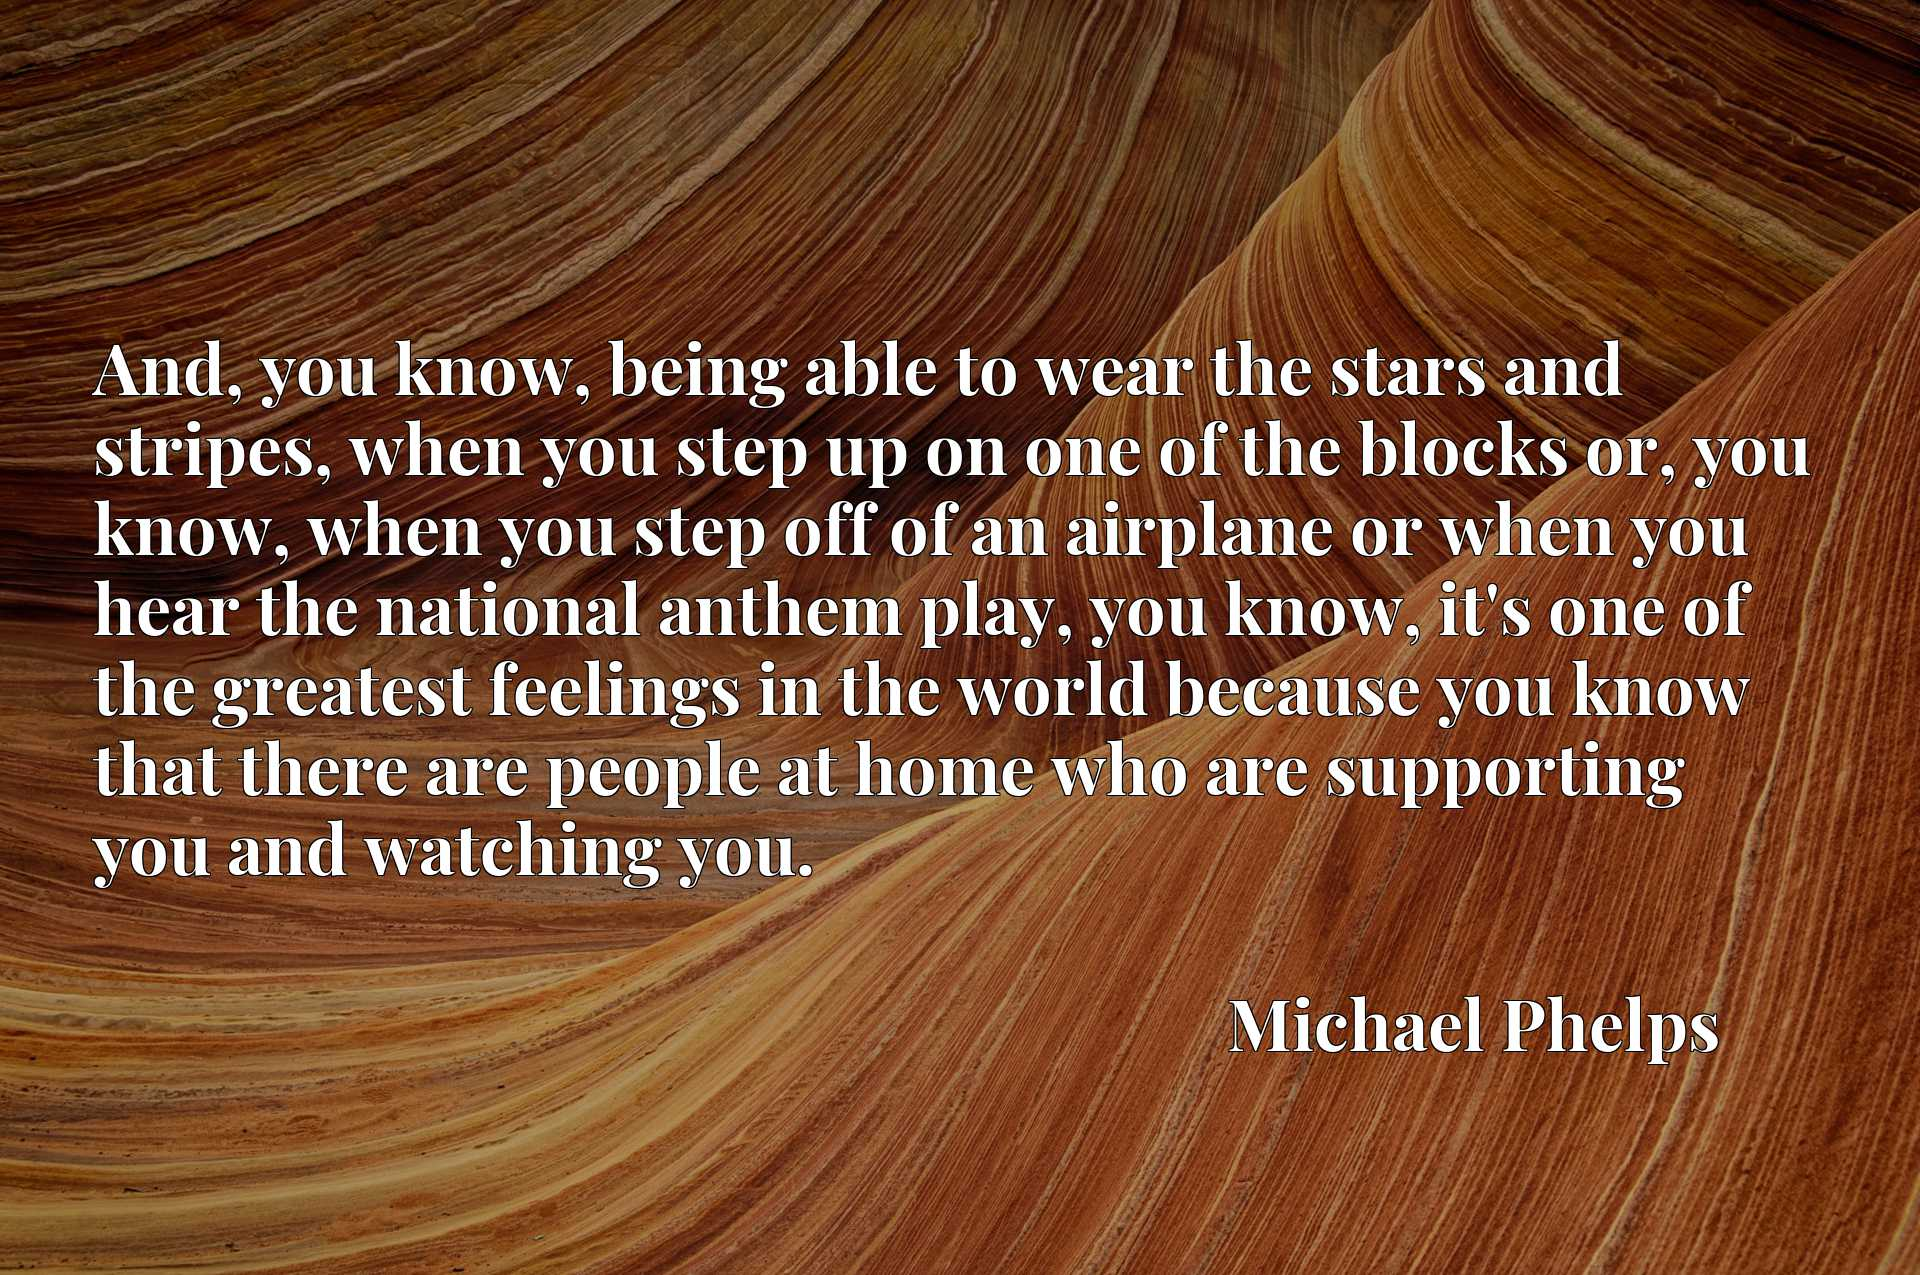 And, you know, being able to wear the stars and stripes, when you step up on one of the blocks or, you know, when you step off of an airplane or when you hear the national anthem play, you know, it's one of the greatest feelings in the world because you know that there are people at home who are supporting you and watching you.